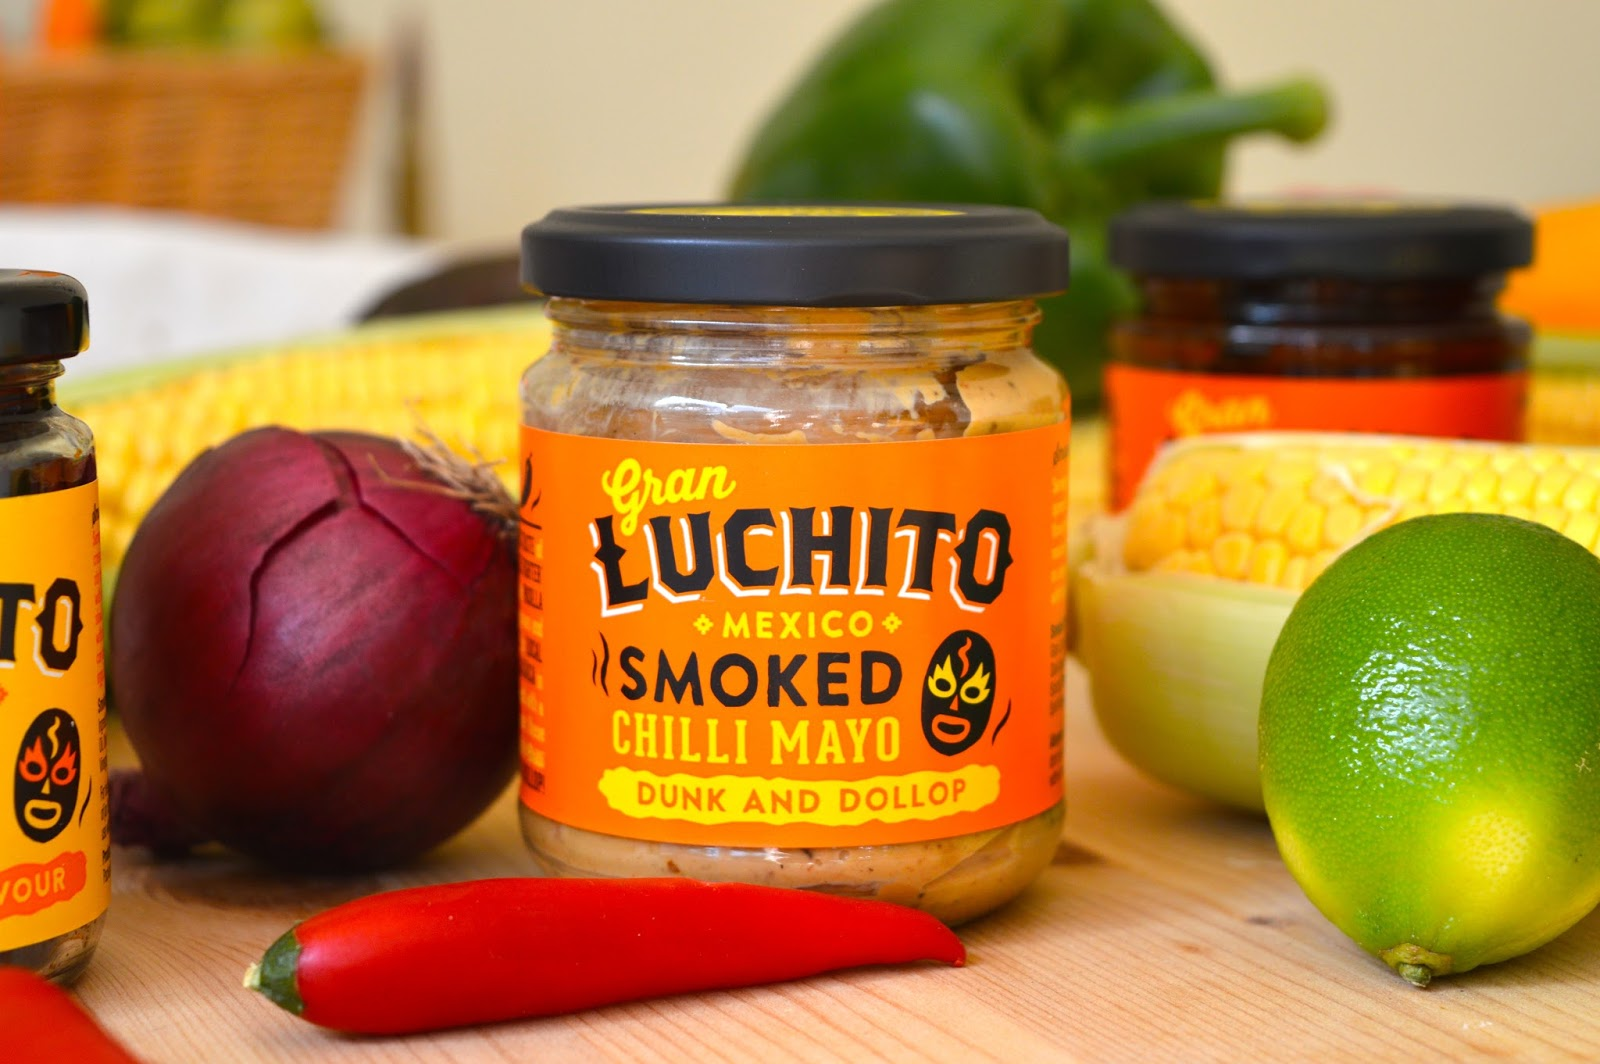 Mexican food recipes, Gran Luchito sauces, food bloggers, UK food blog, lifestyle bloggers, UK lifestyle blog